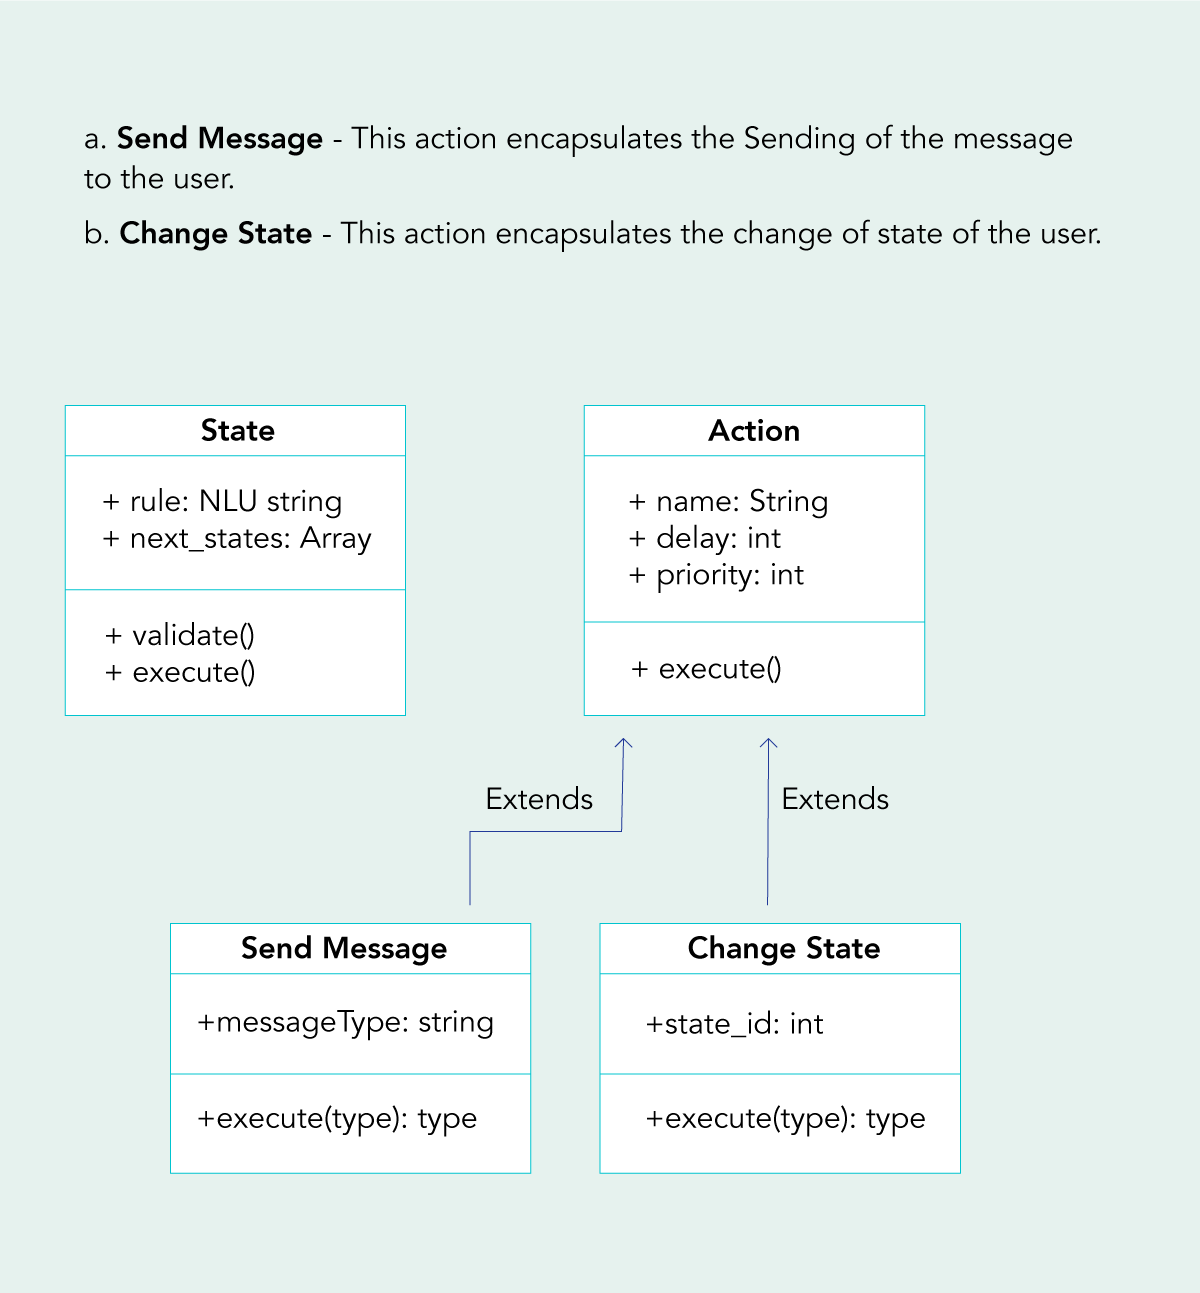 action encapsulates the change of state of the user